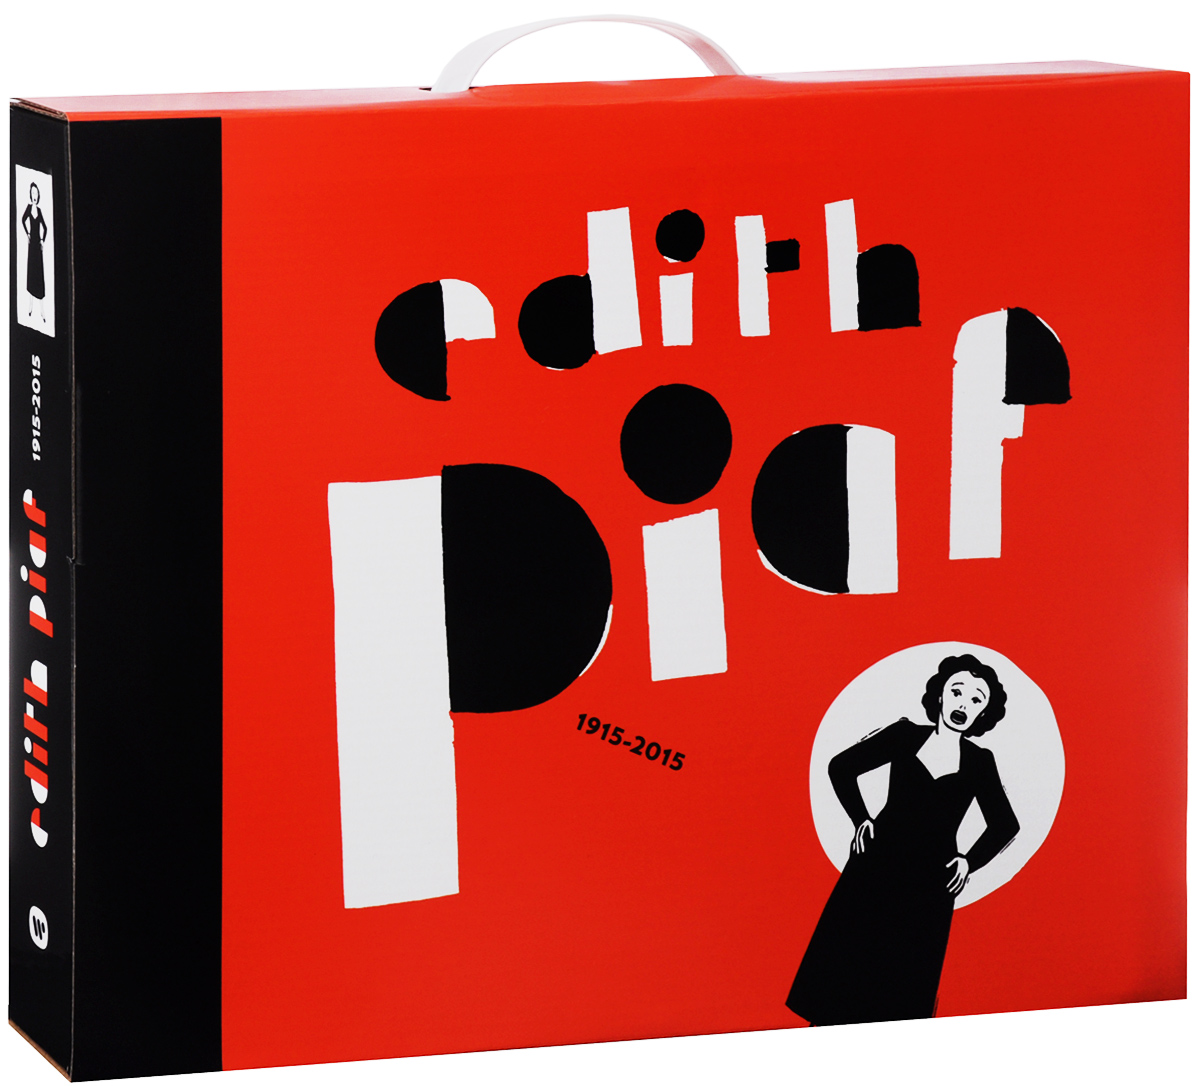 Эдит Пиаф Edith Piaf. 1915-2015. Limited Numbered Edition (20 CD + LP) roxy music roxy music the studio albums limited edition 8 lp